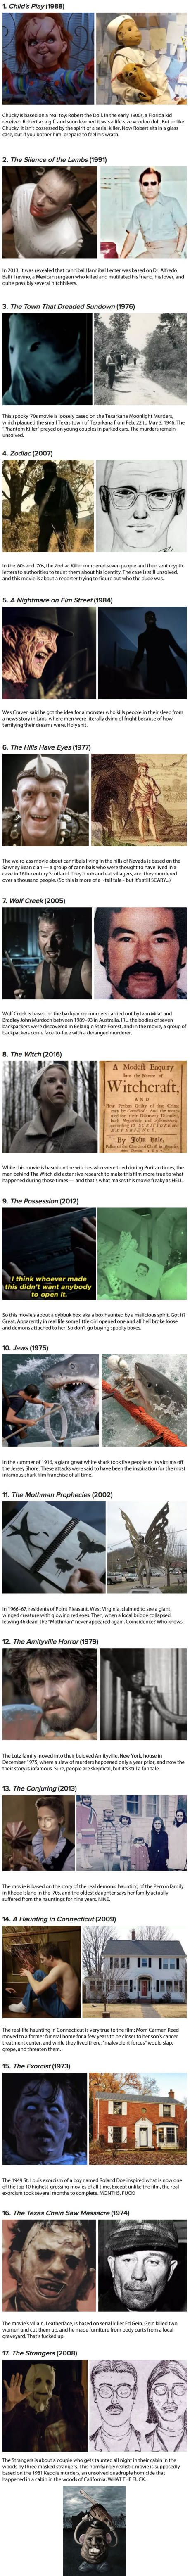 17 Unsettling True Stories That Were So F**ked-Up They Became Horror Movies